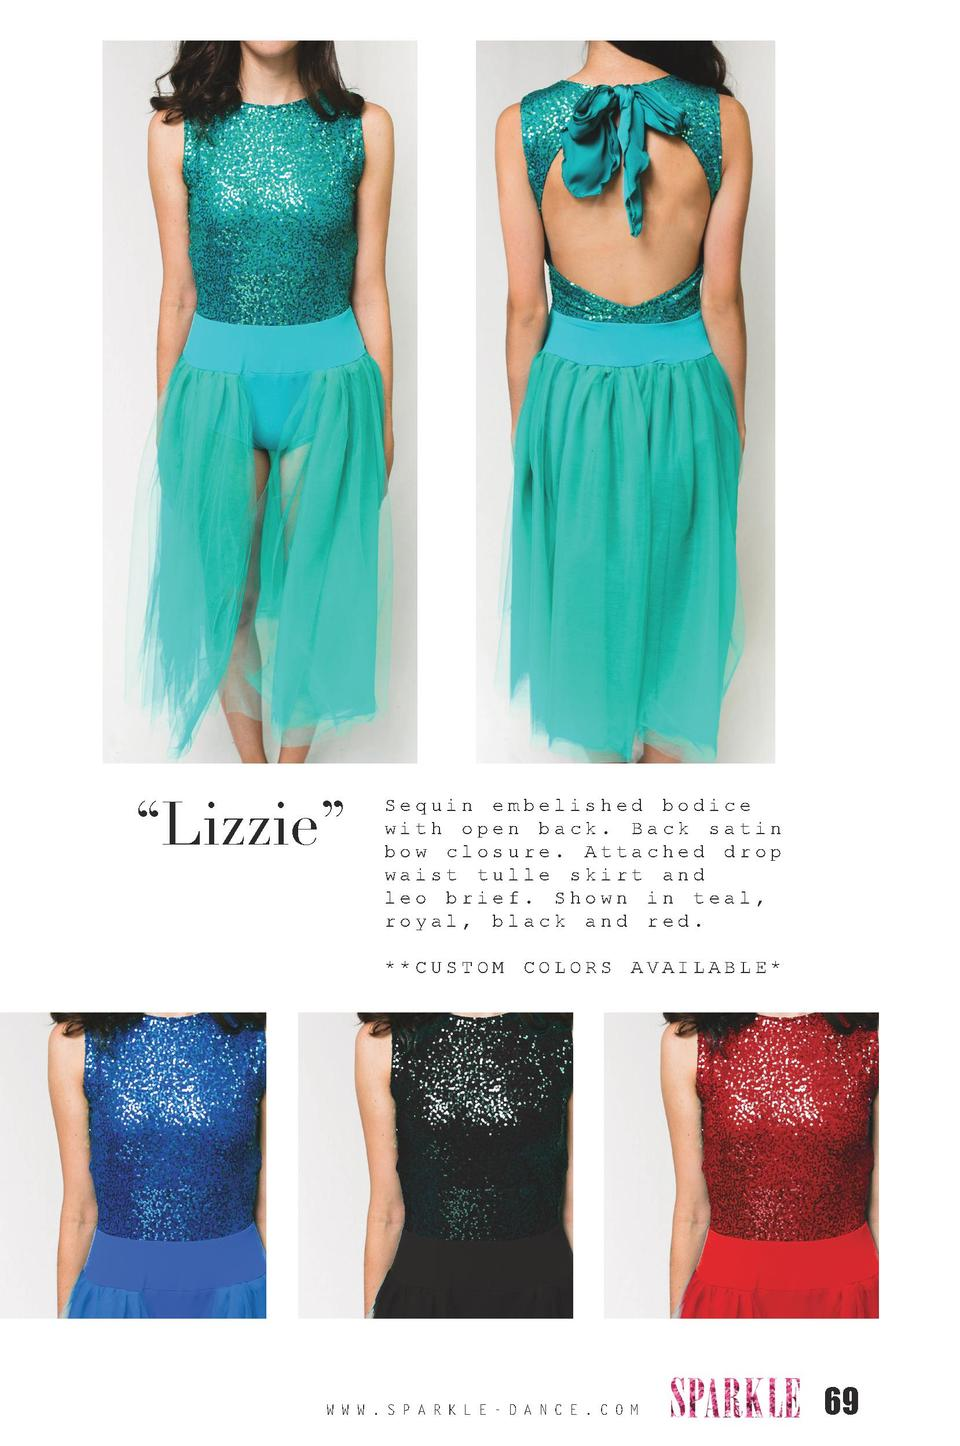 Lizzie     Sequin embelished bodice with open back. Back satin bow closure. Attached drop waist tulle skirt and leo bri...